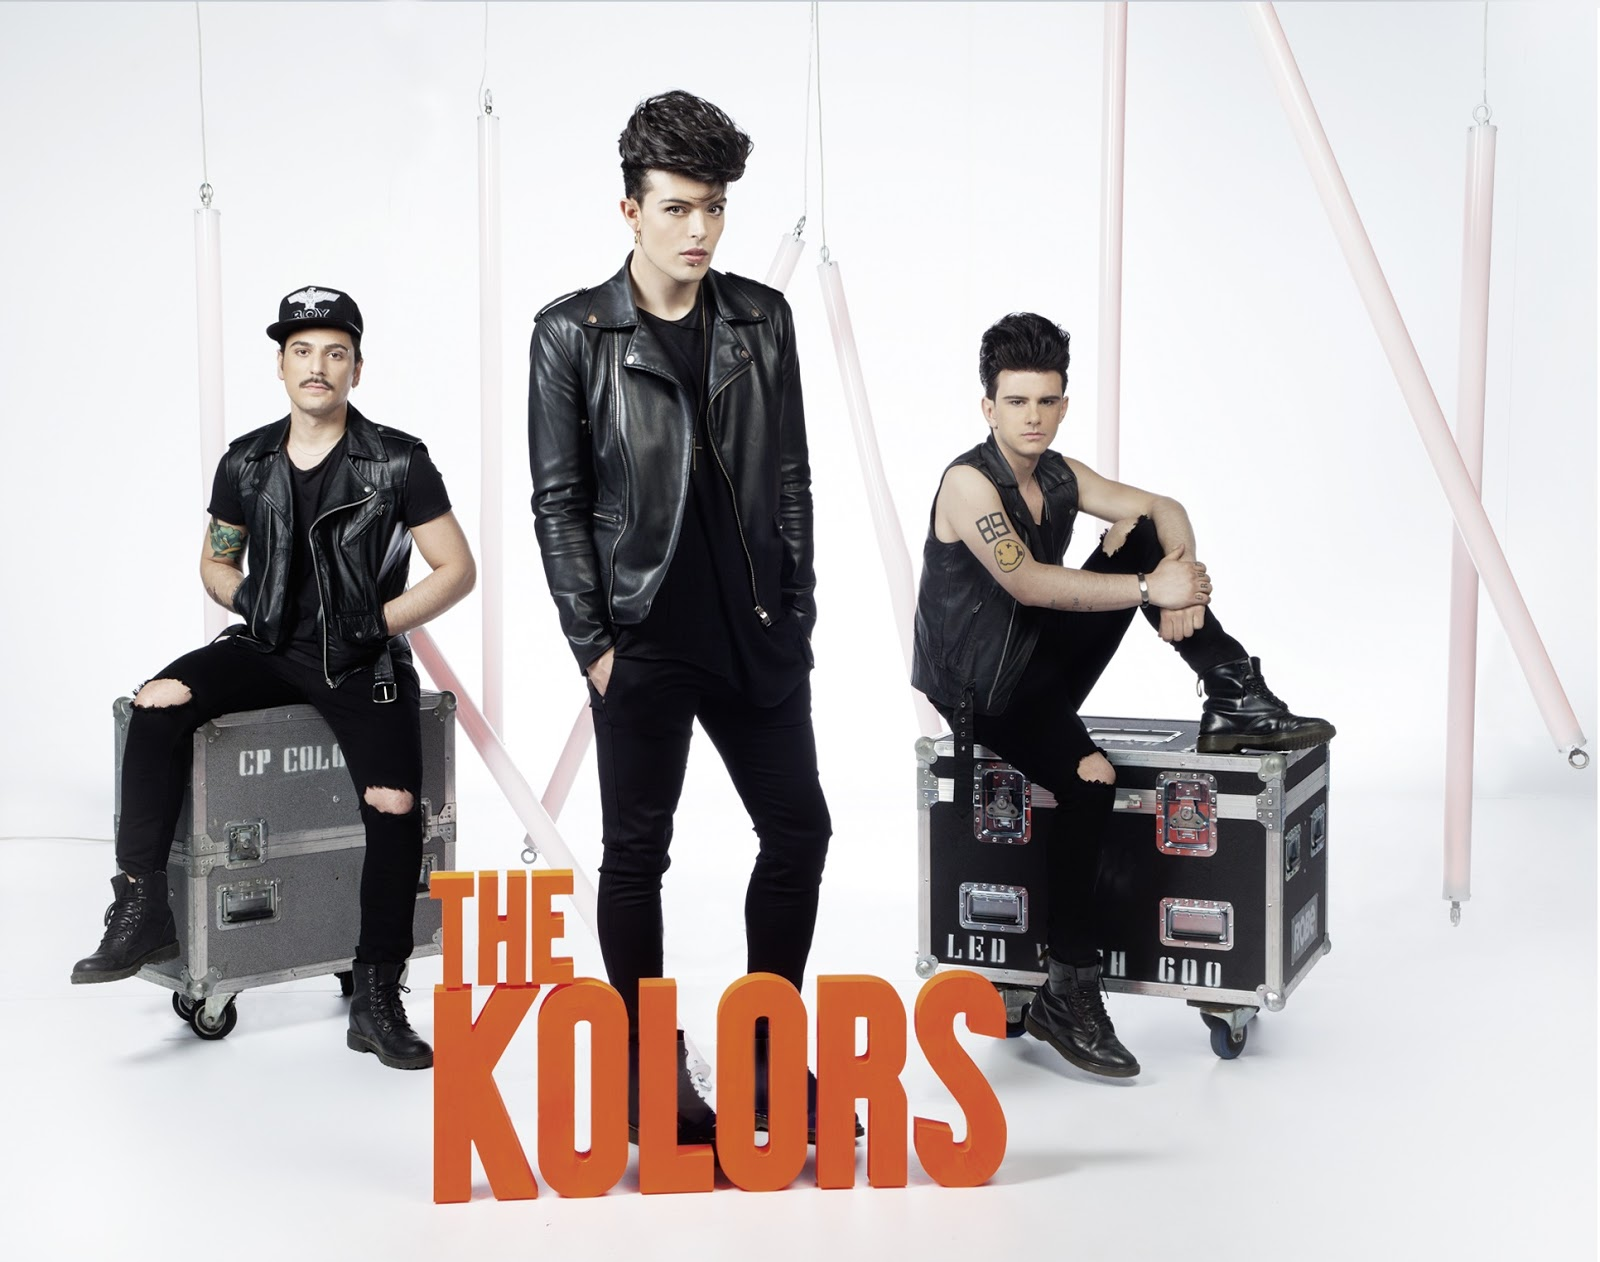 Twisting - The Kolors: testo, video e traduzione